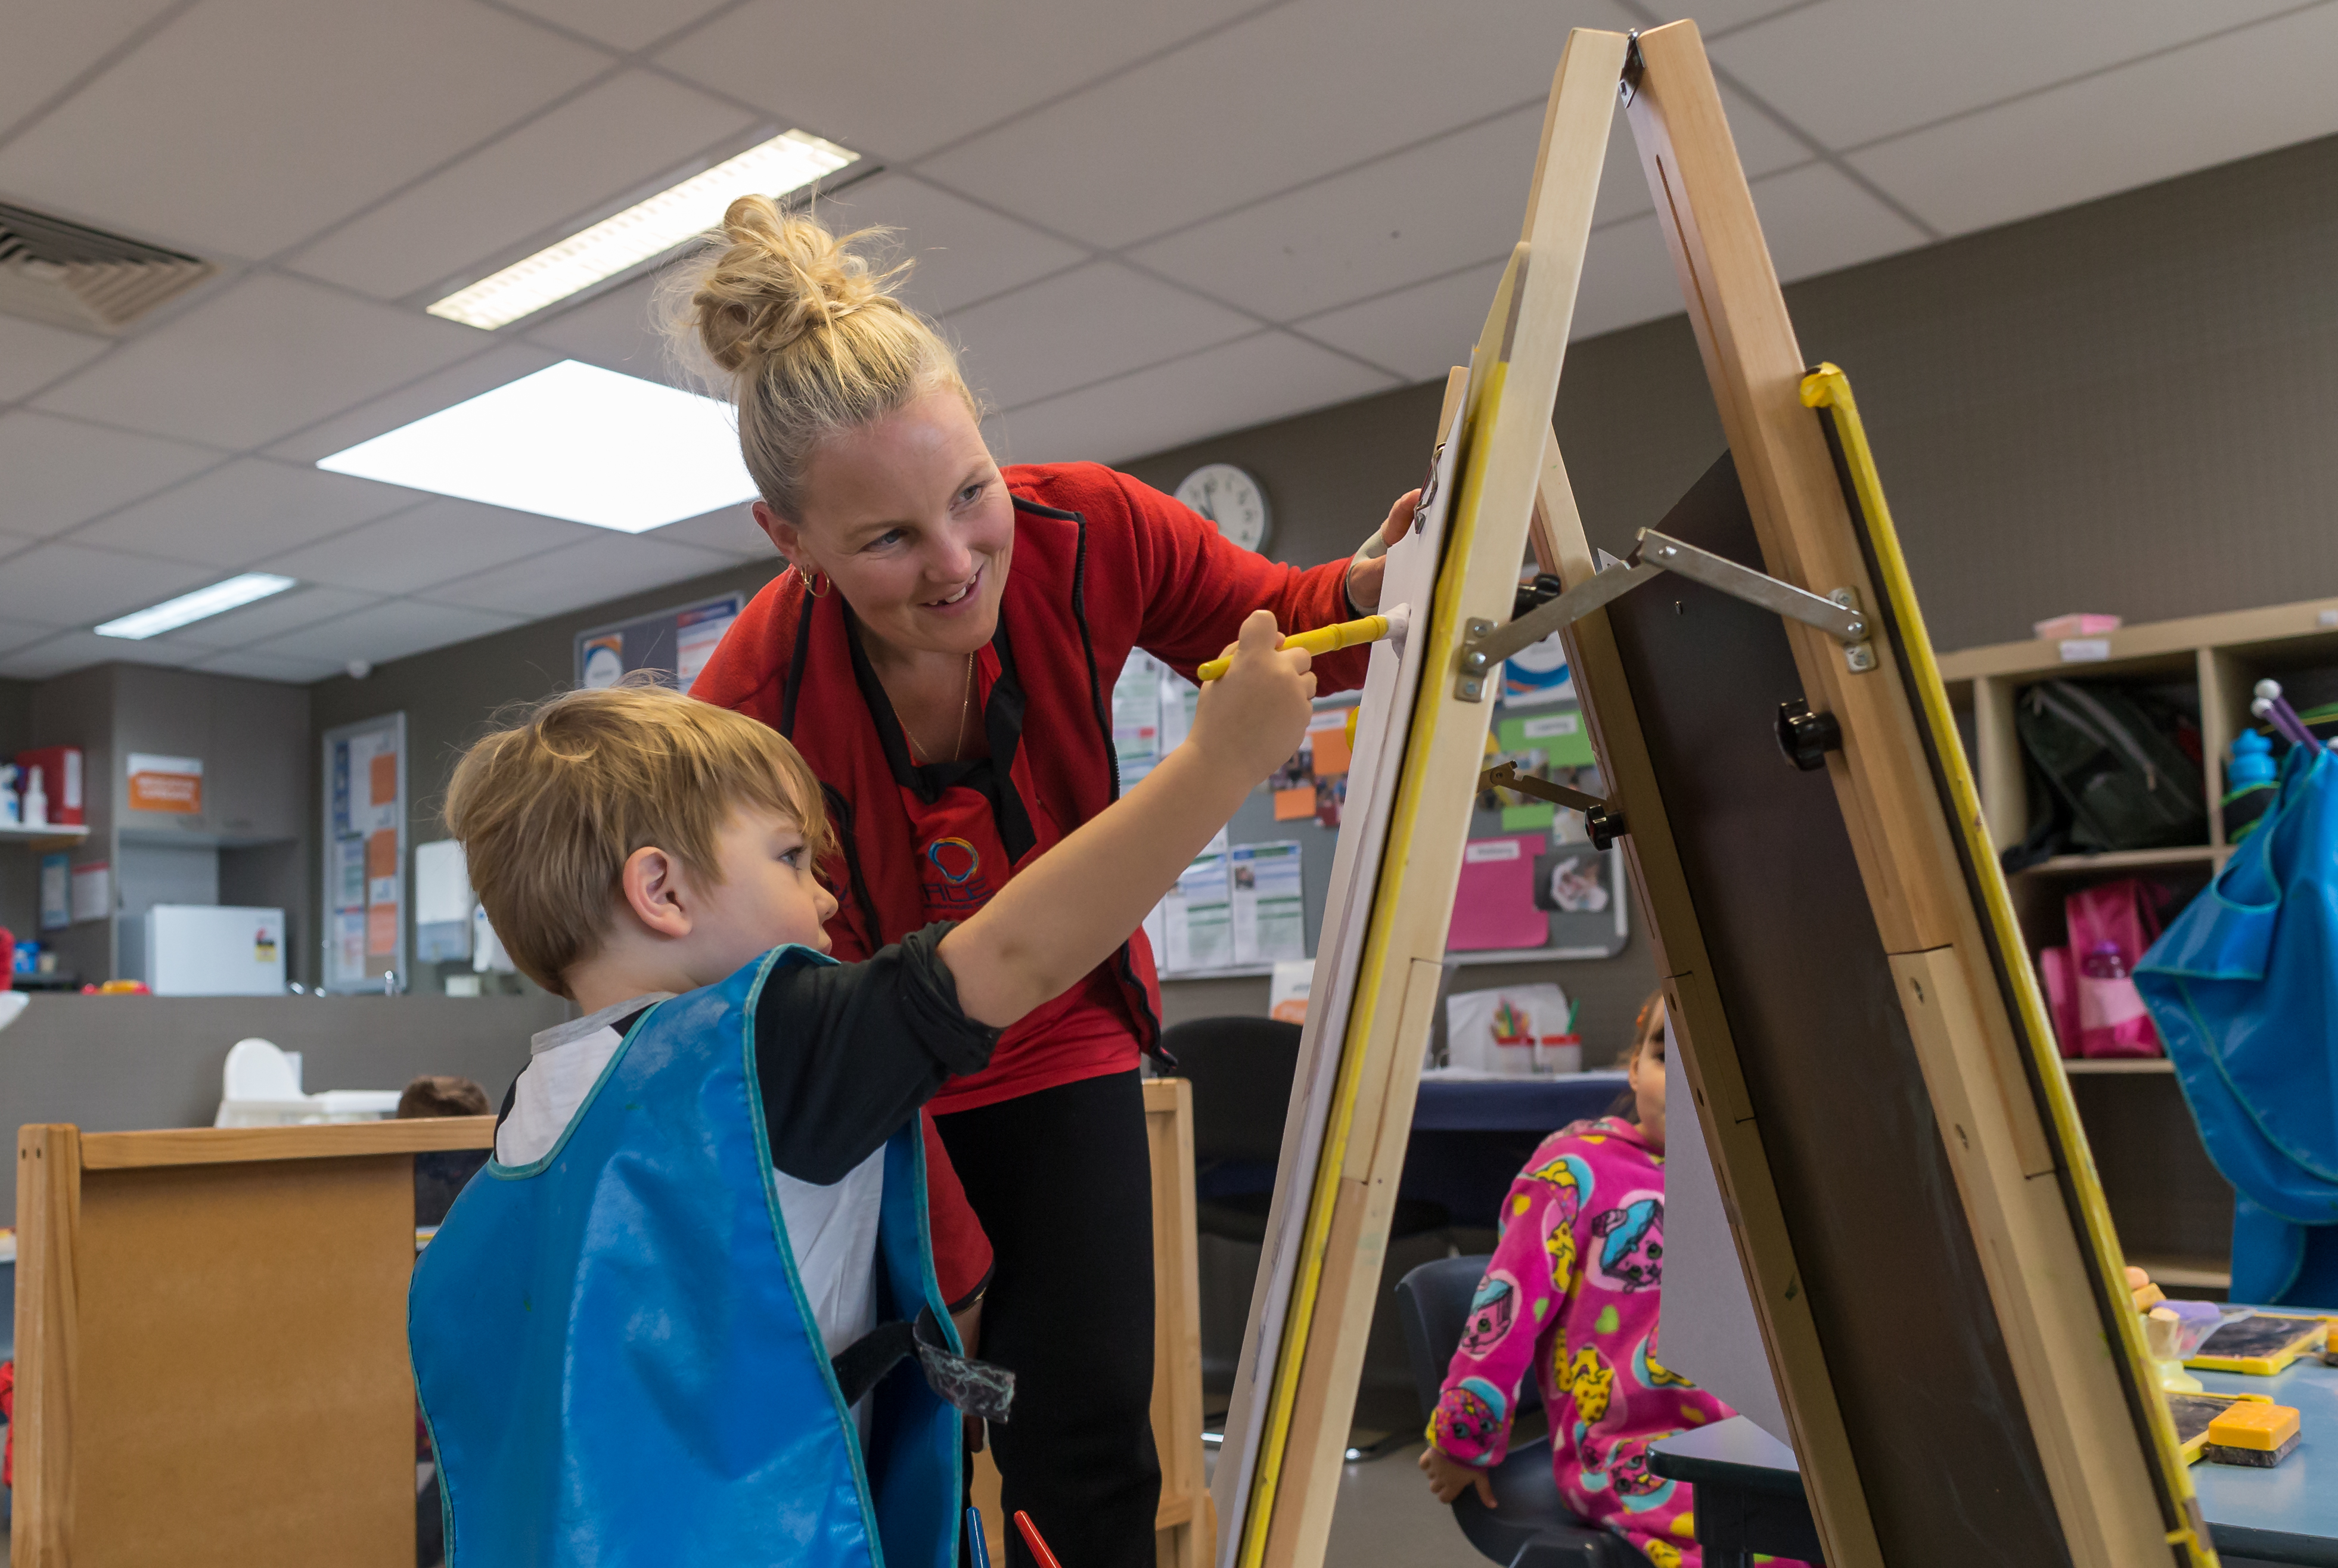 Young boy doing art on an easel